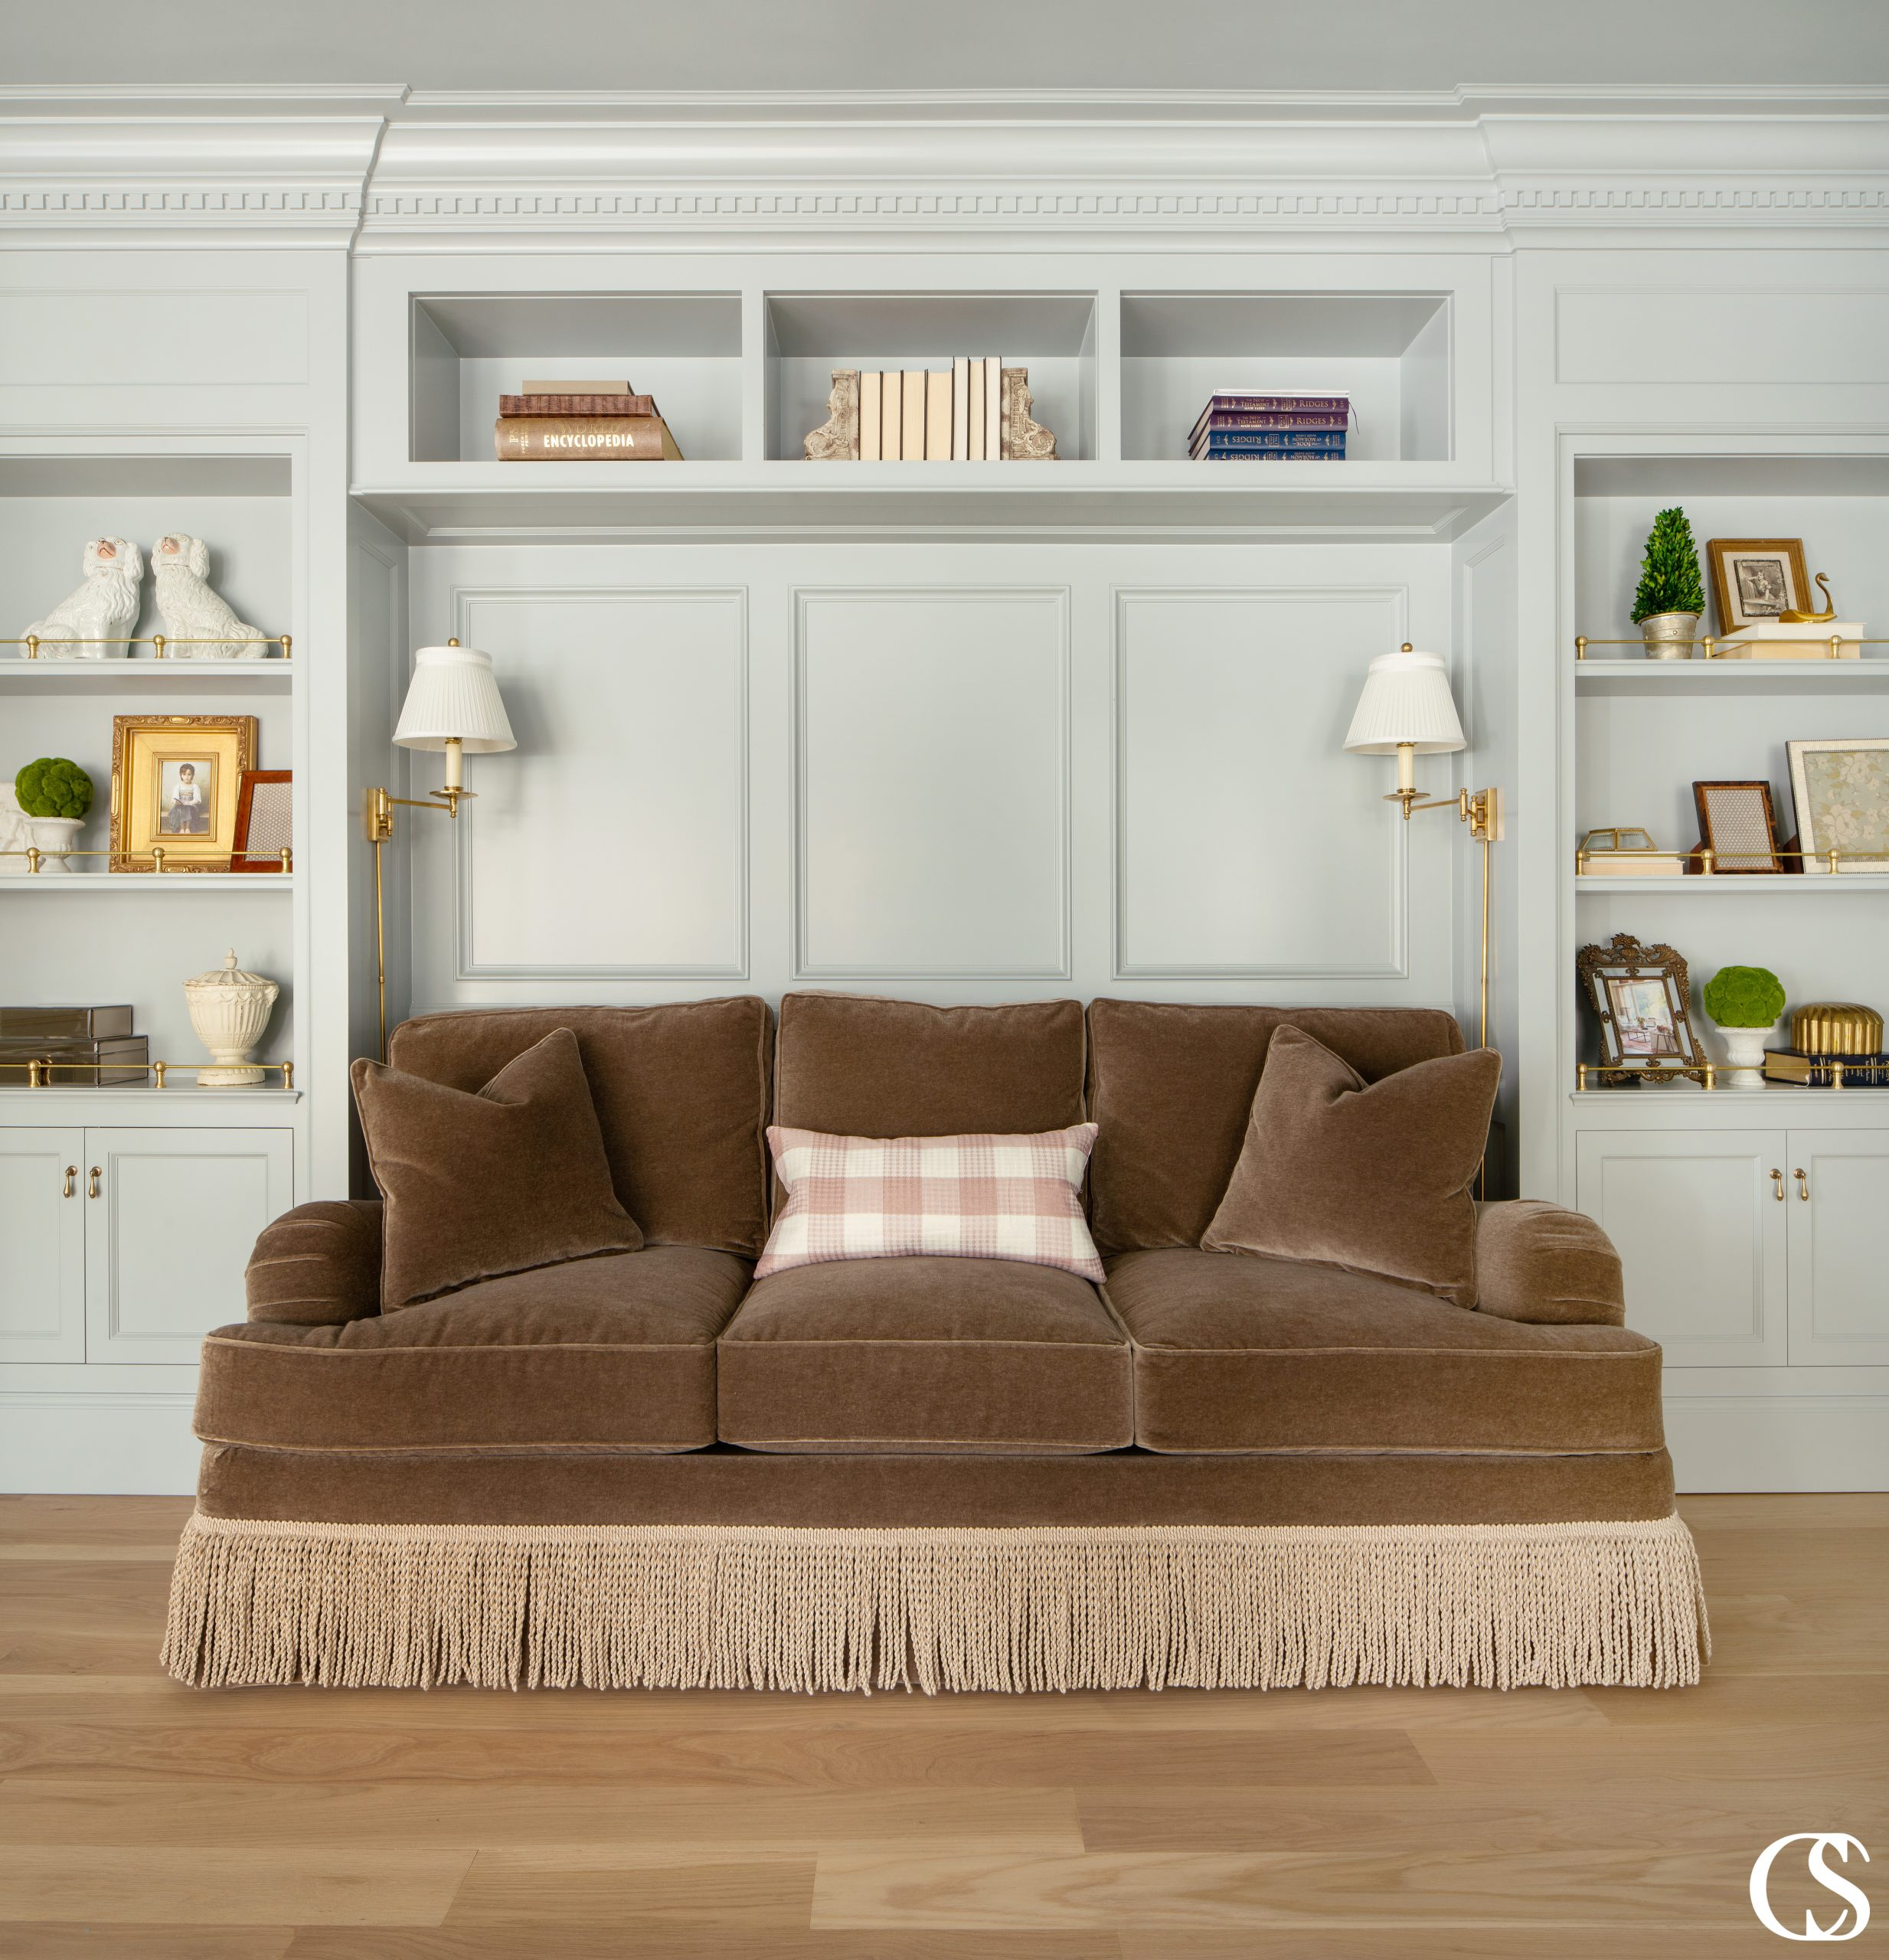 What style makes you feel at home? The best custom built-ins should be able to add to the aesthetic, comfort, function, and value of your home.